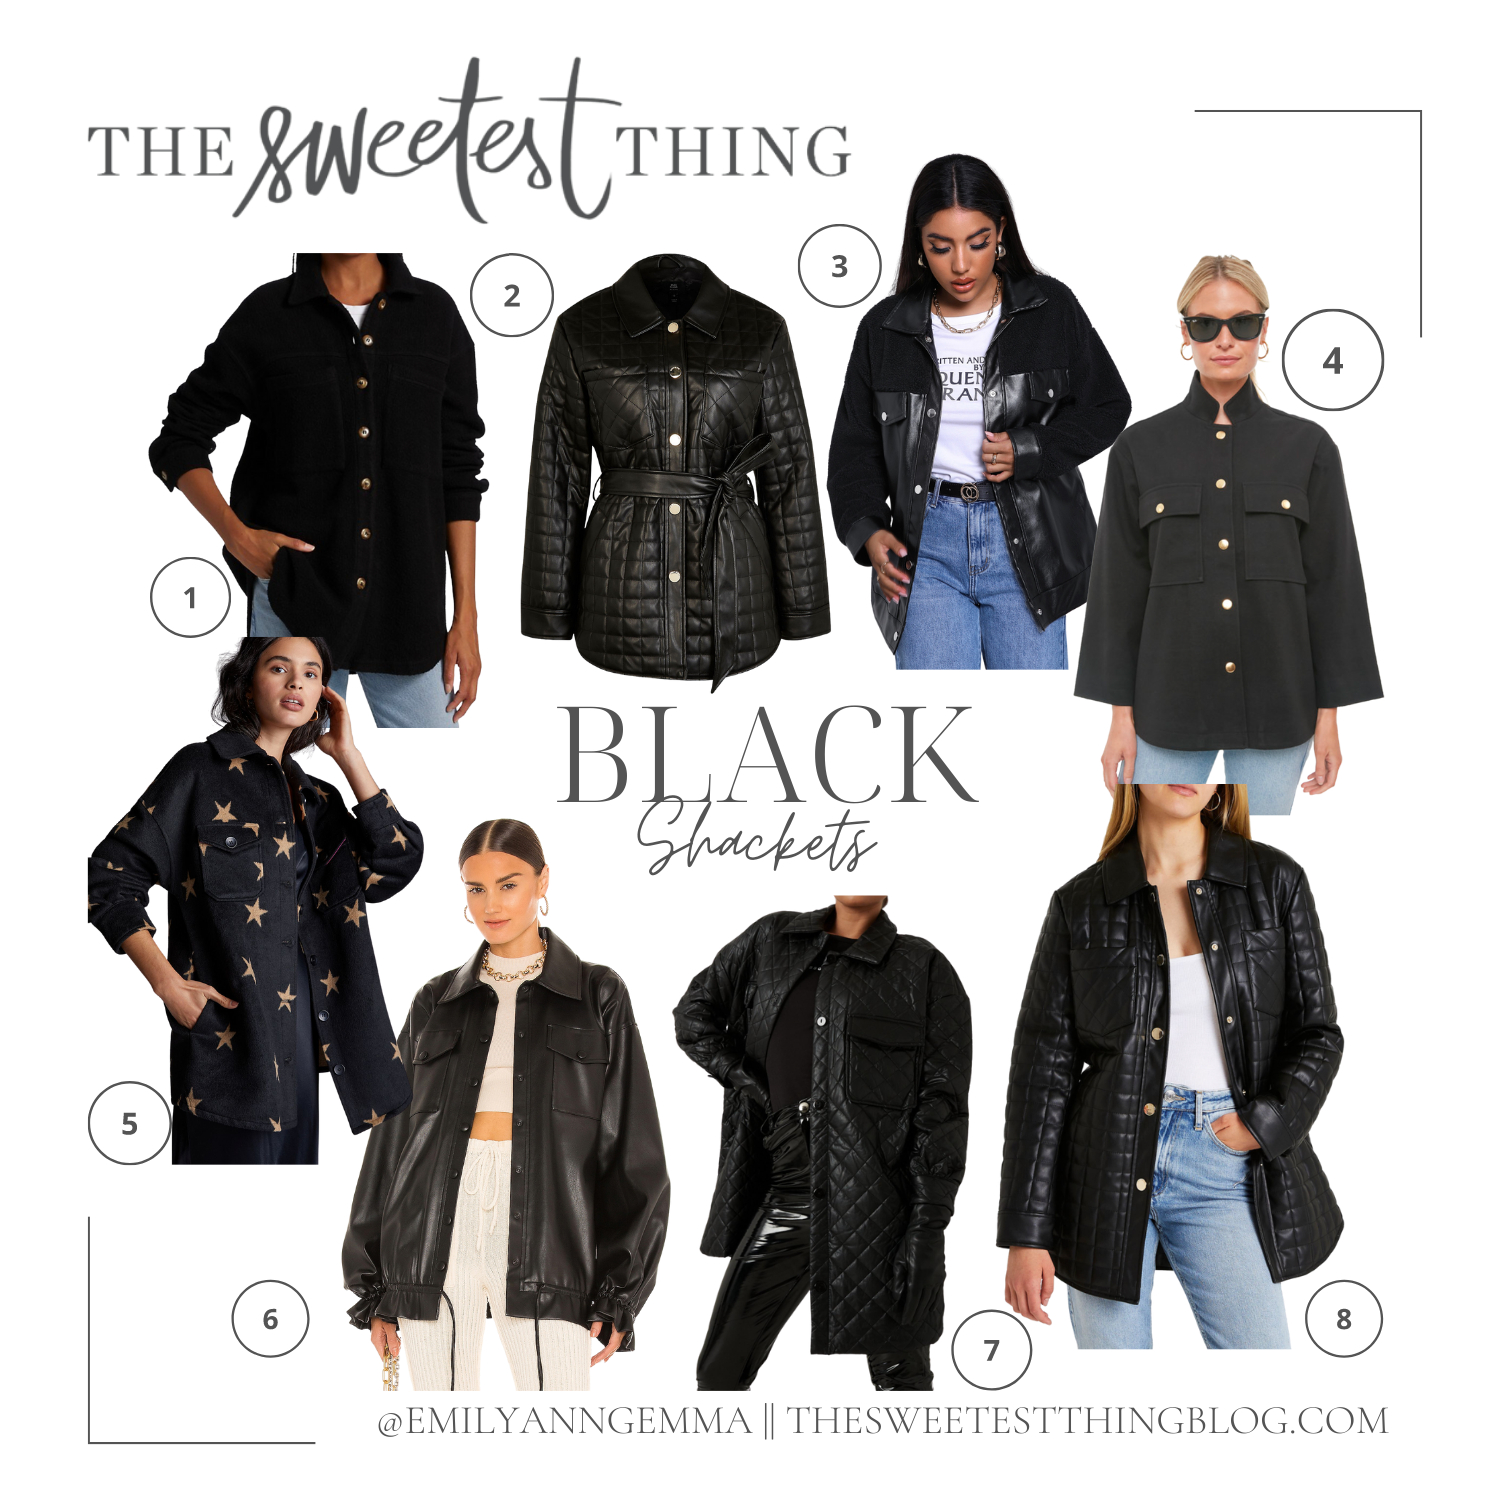 Balmain Inspired Quilted Shacket styled by top US fashion blogger, The Sweetest Thing